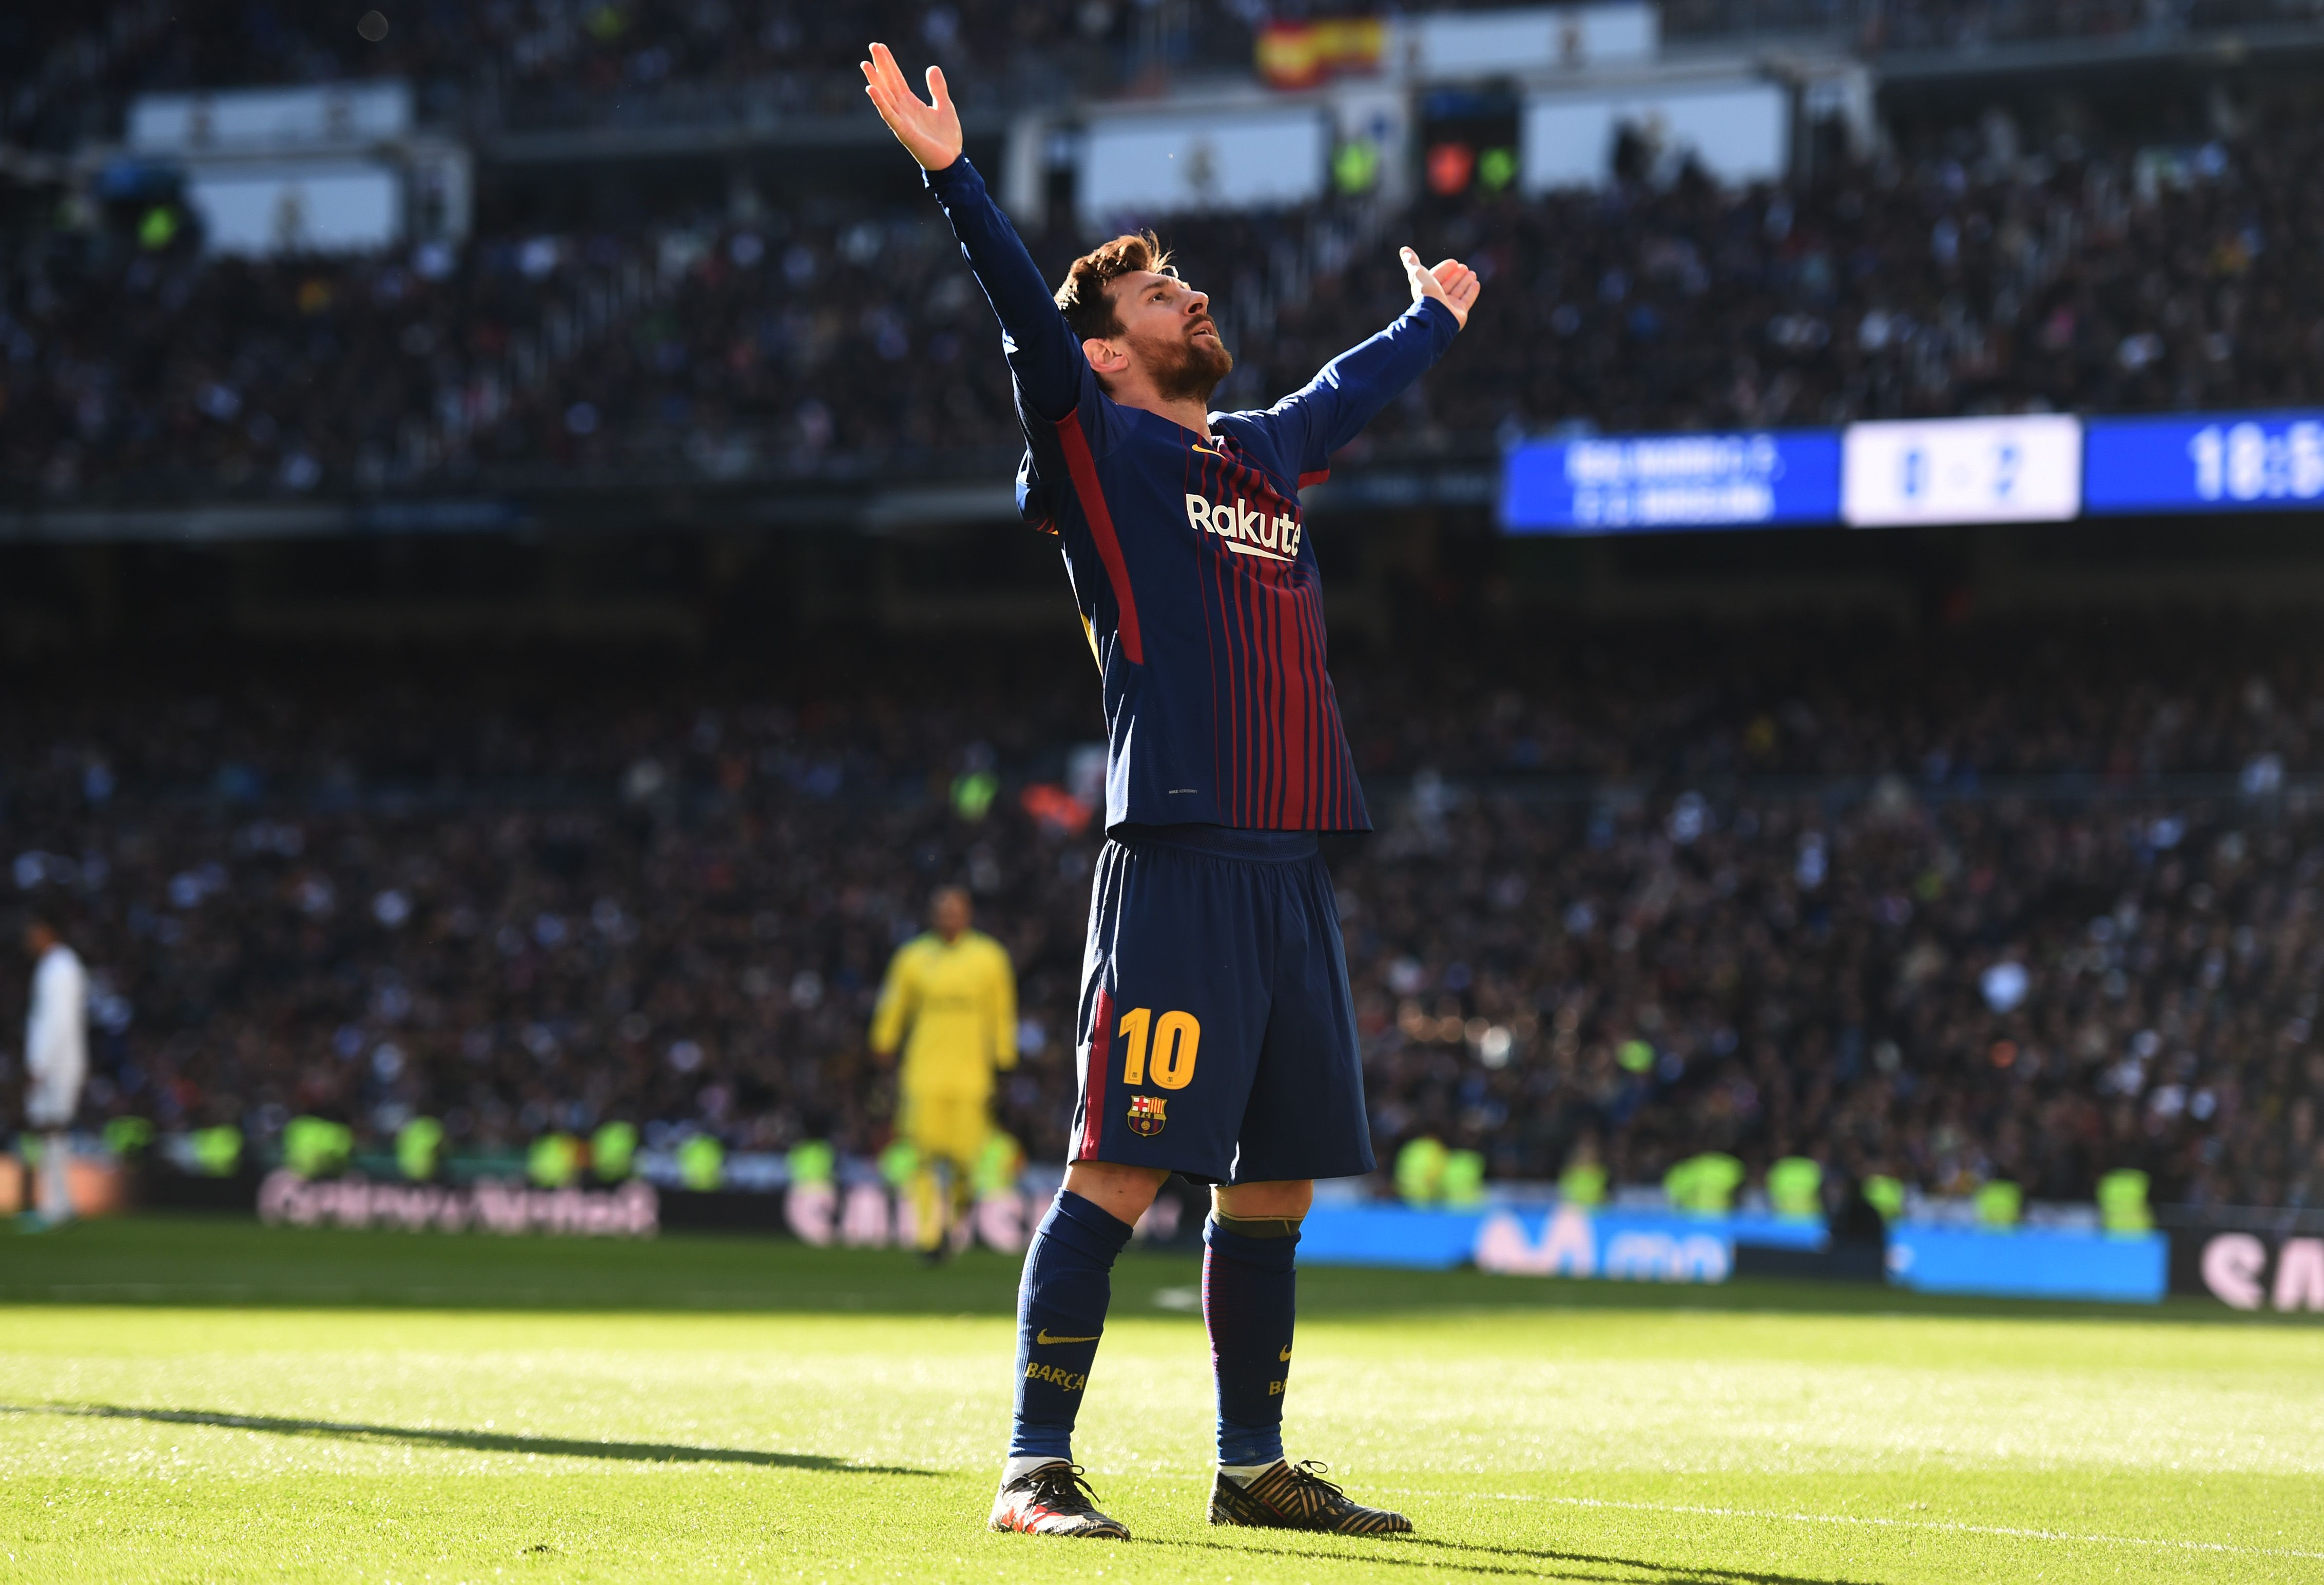 Barcelona All But Ends Real Madrid S Title Chances In El Clasico Win Lionel Messi Lionel Messi Barcelona Messi